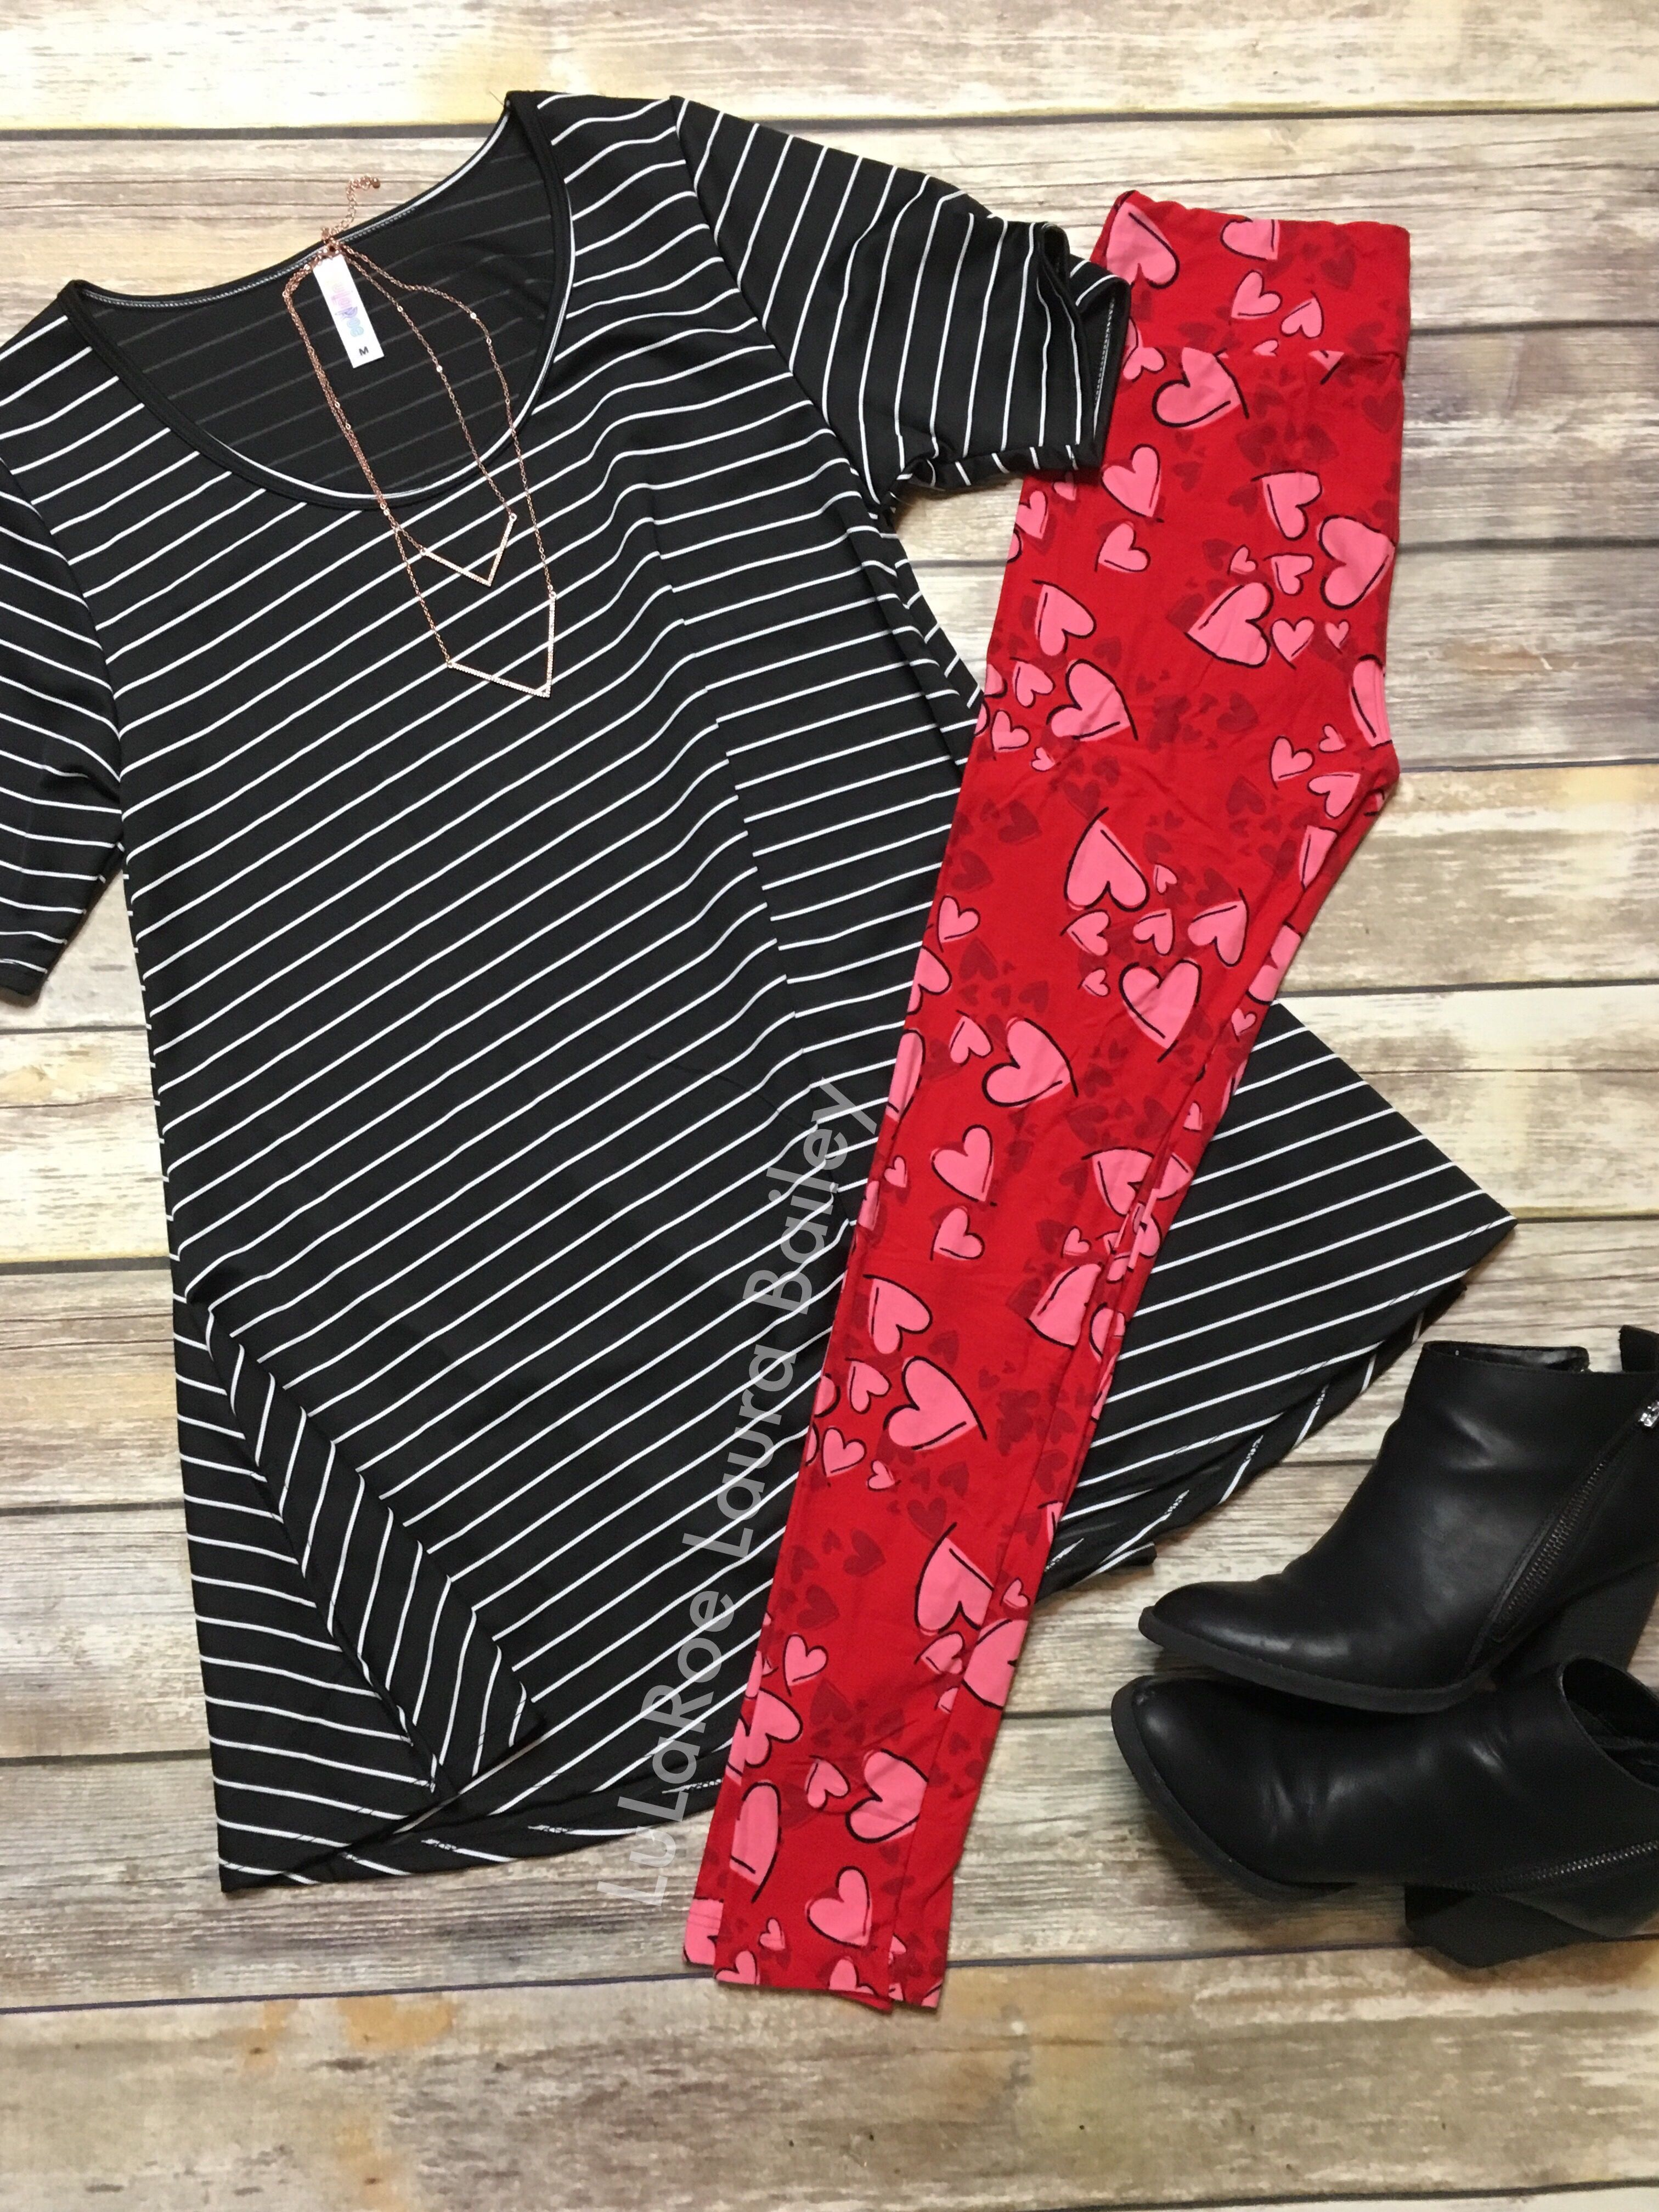 3802bb7c6dc558 Cute LuLaRoe Valentines Day outfit! | My Lula obsession in 2019 ...